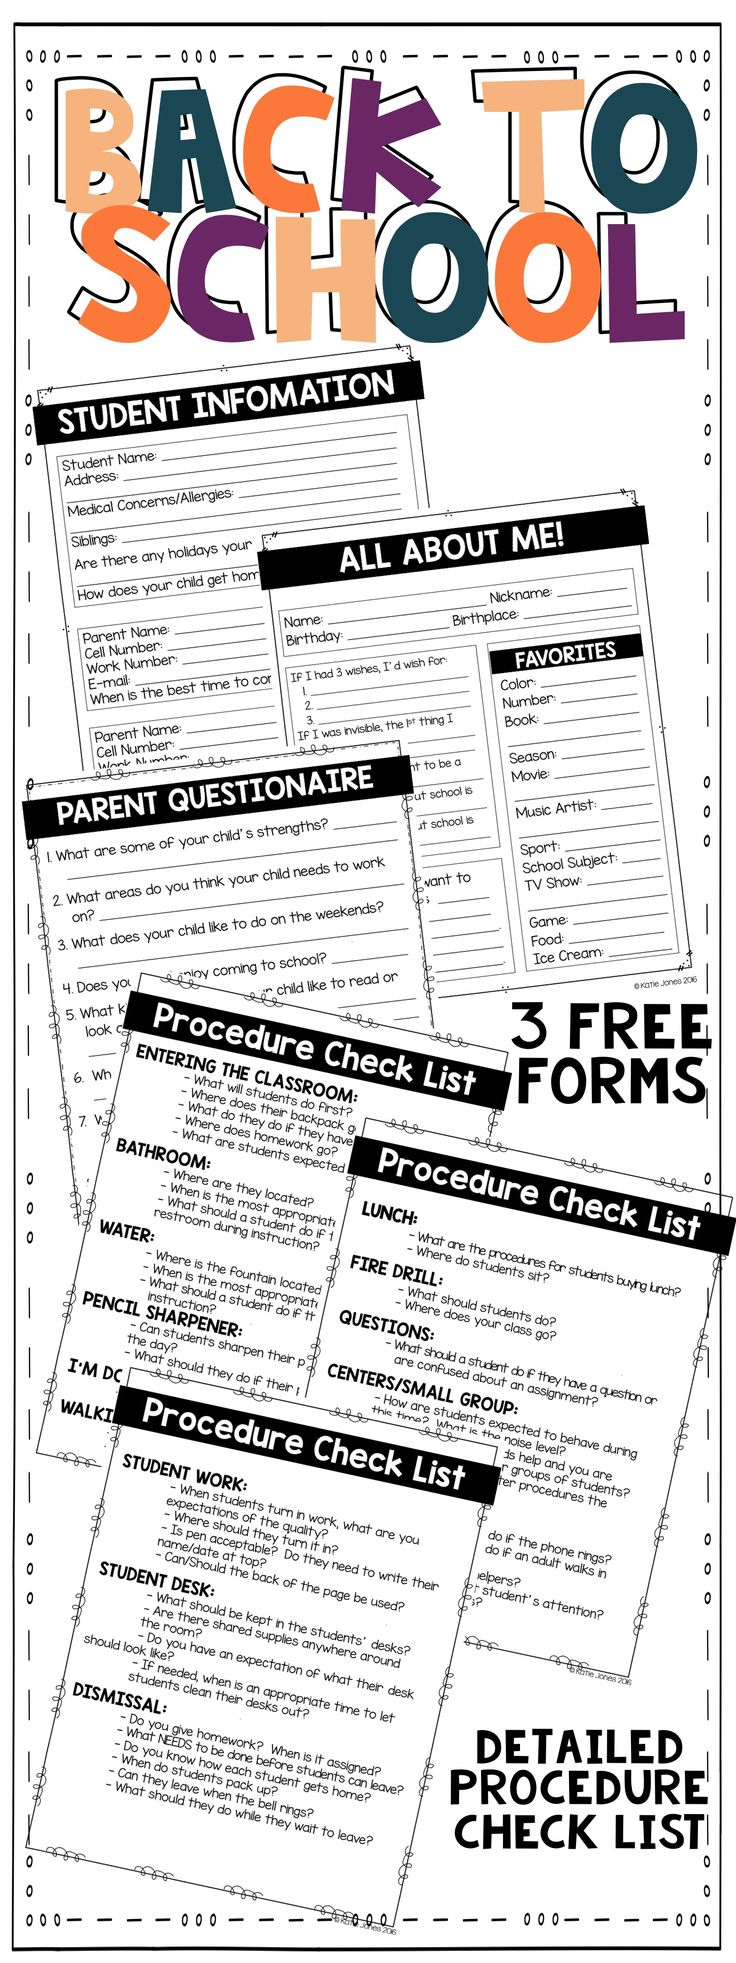 FREE!!!! 3 forms to use the first week of school: student information sheet, all about me sheet for students, and a parent questionnaire.  This FREE download also comes with a 3 page procedure check list. Use the check list when planning your first week of school to ensure no procedures are left out!